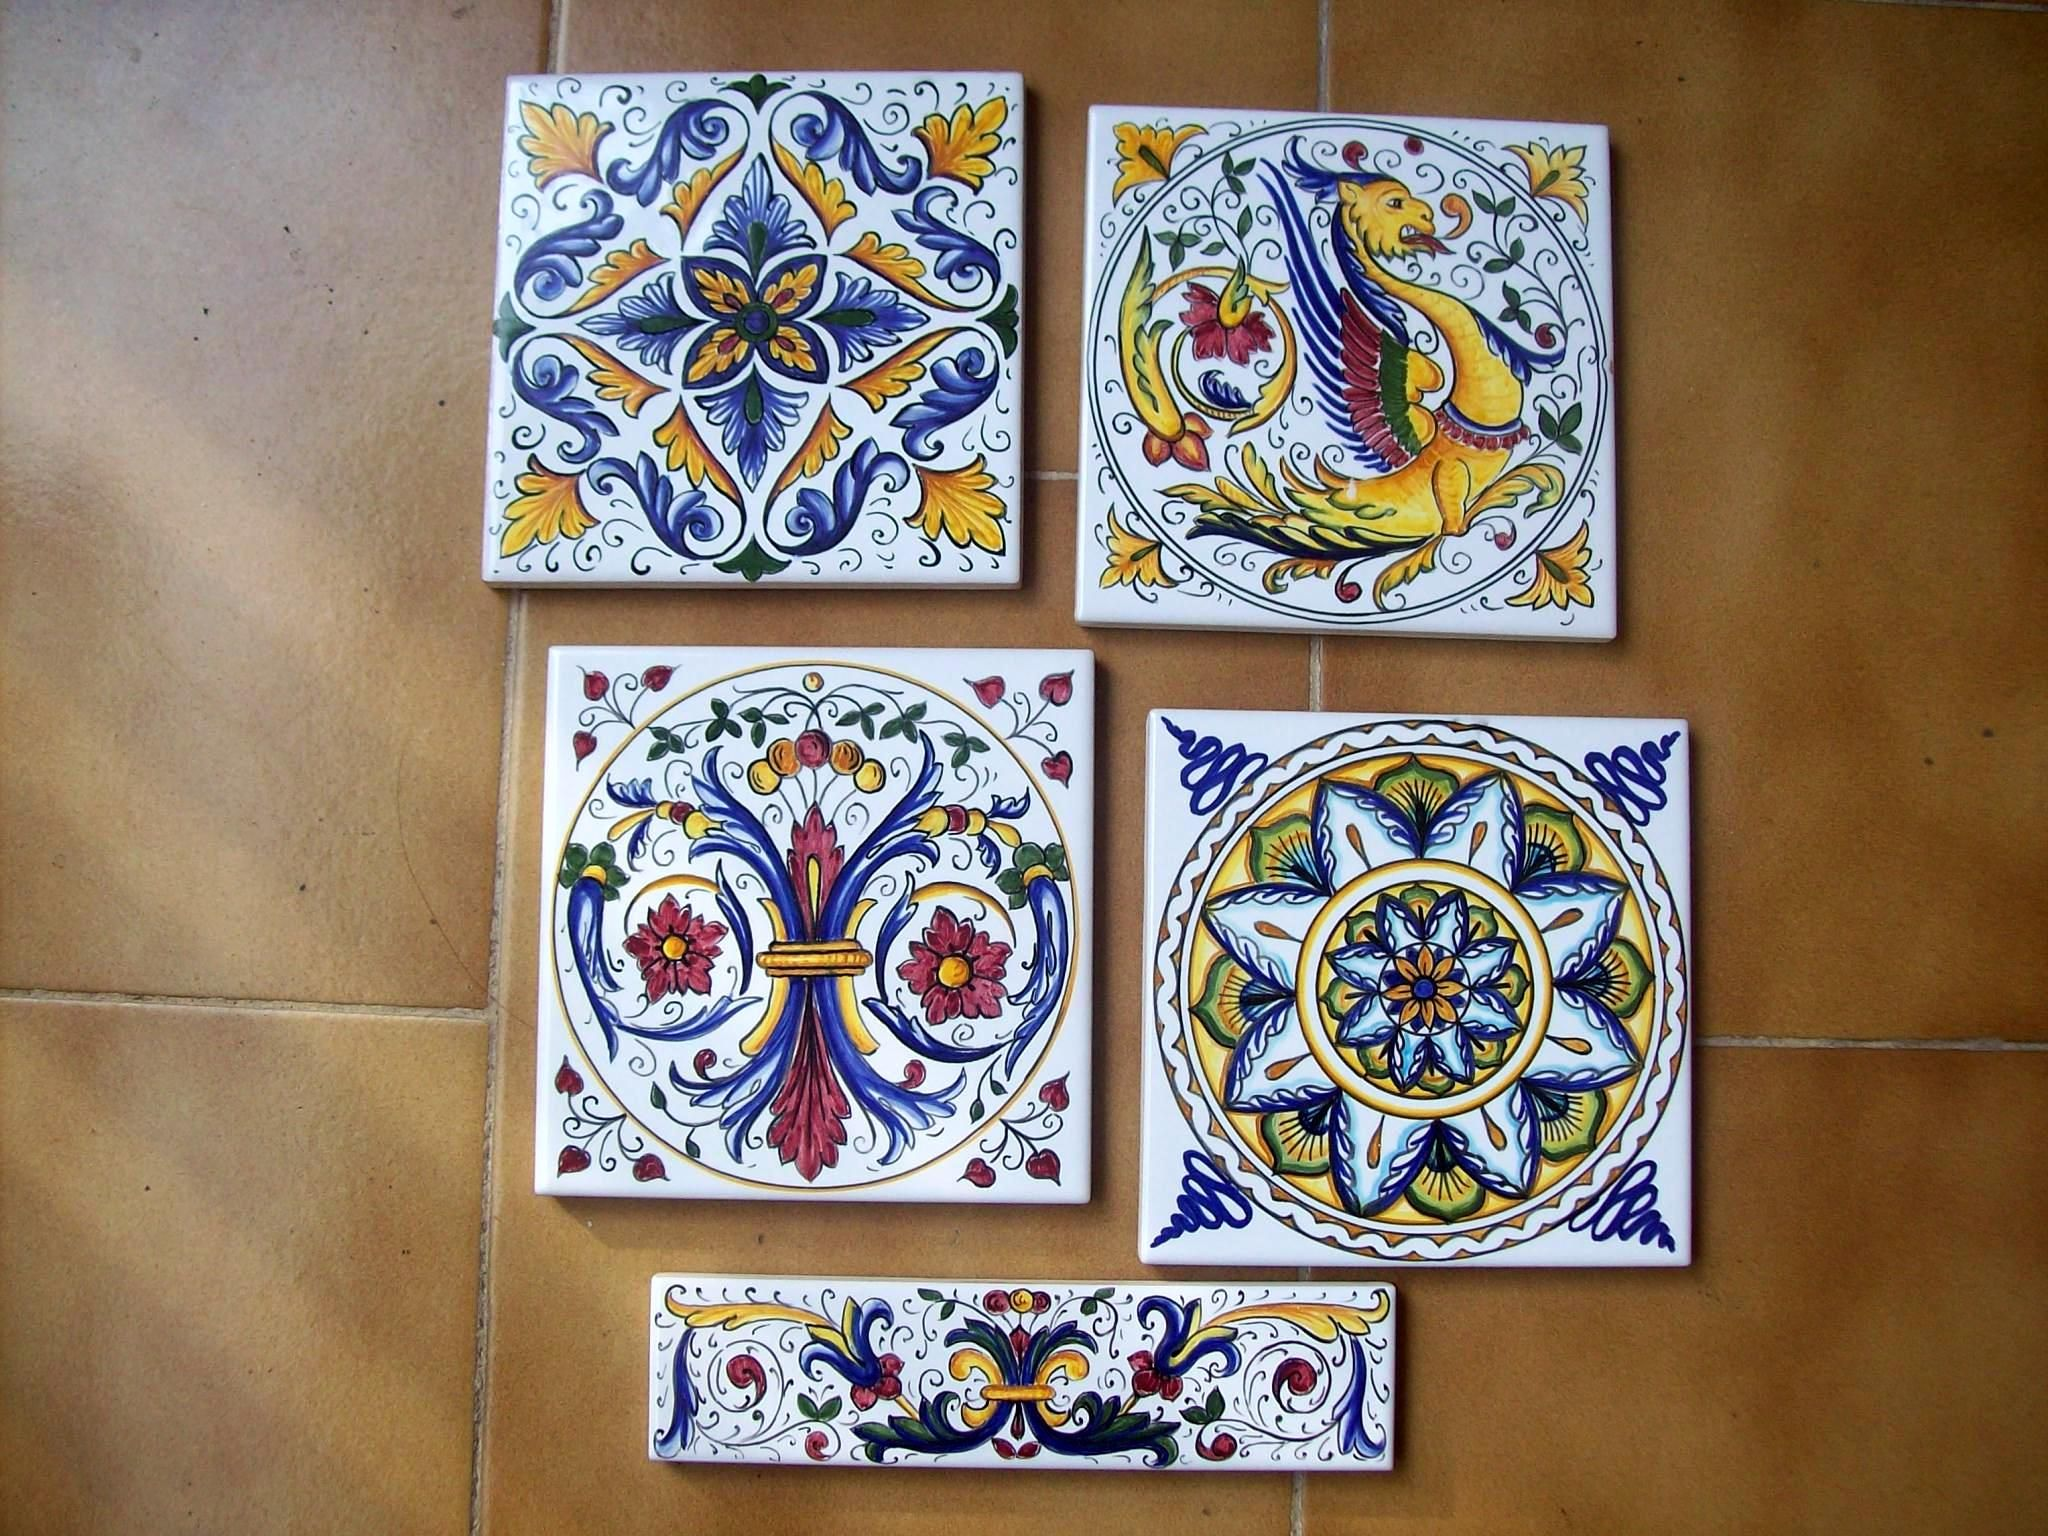 Piastrelle di ceramica decorate a mano - Piastrelle decorate a mano ...